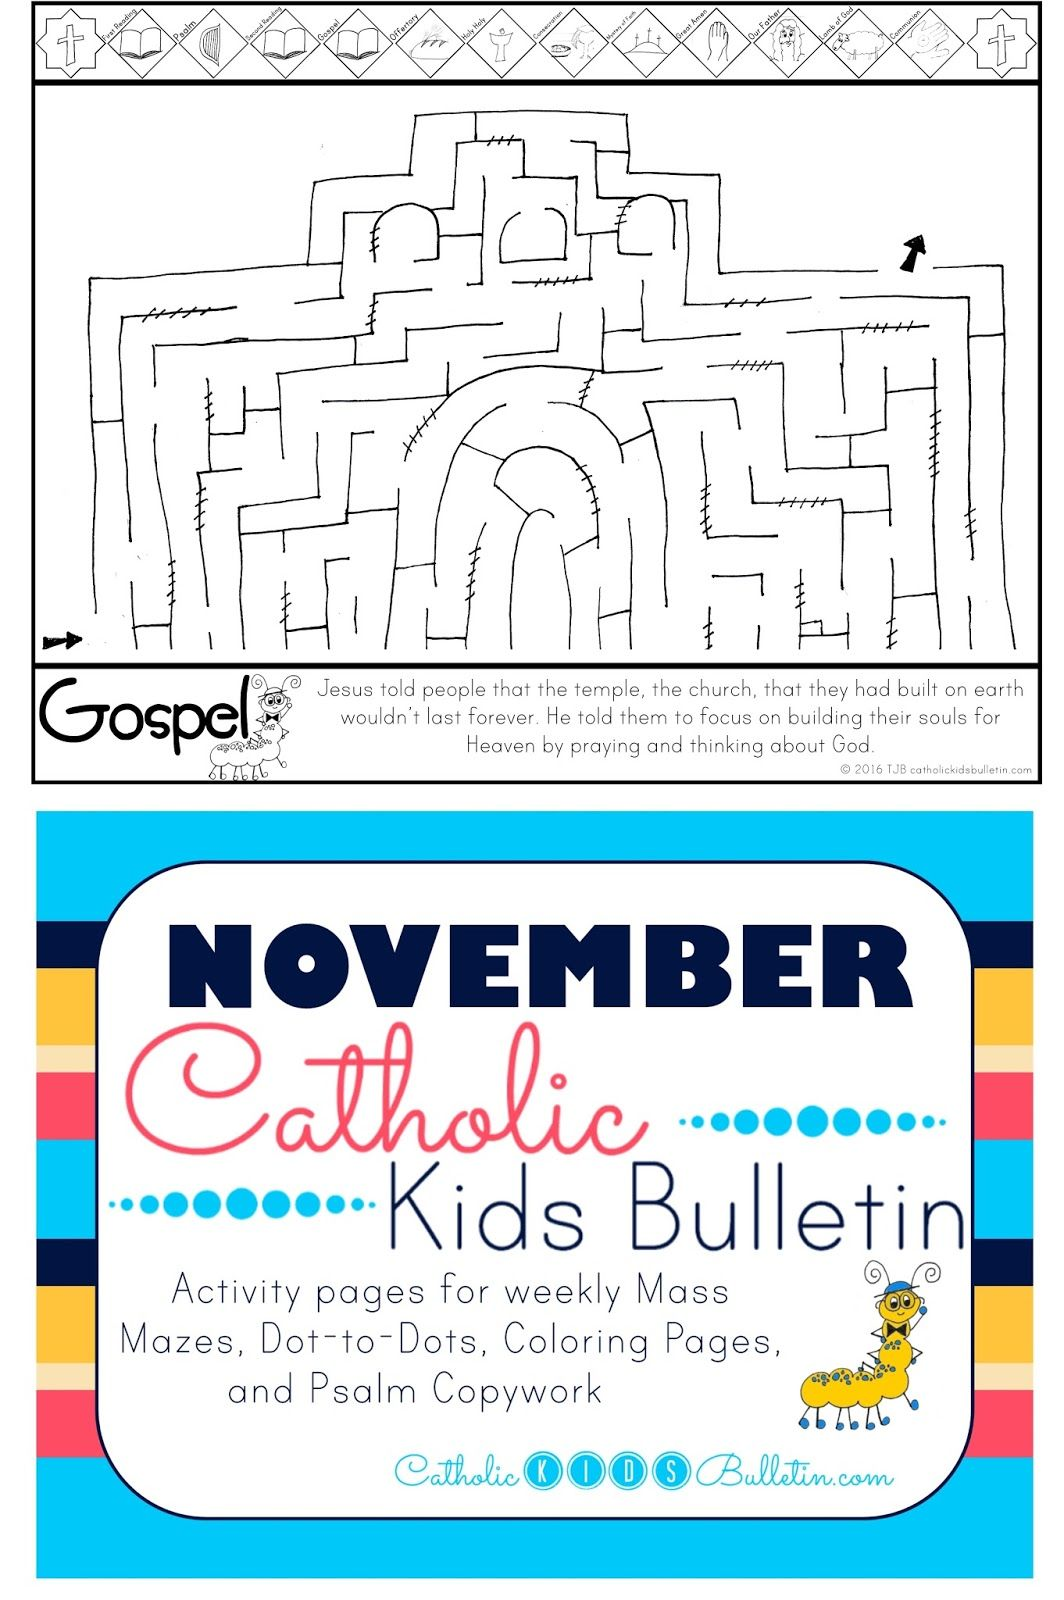 Catholic Kids Bulletin Weekly Mass Prep For Kids Luke 21 5 19